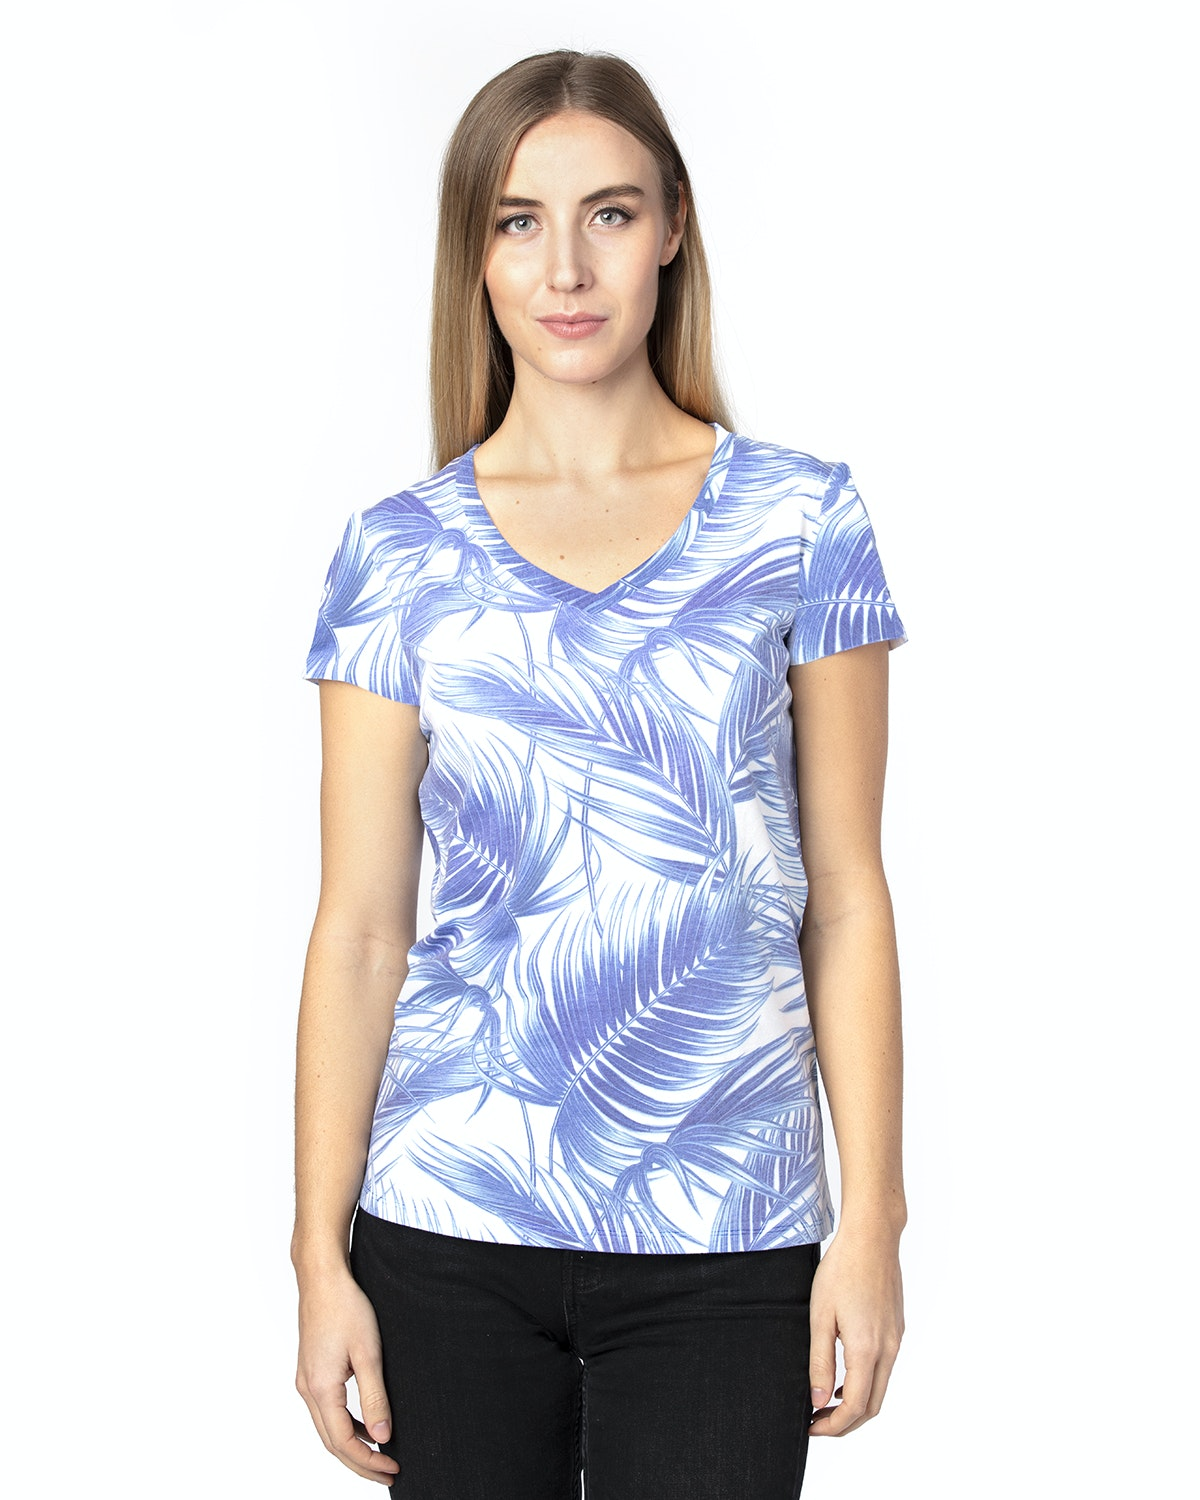 Threadfast Apparel 200RV Palm Paradise